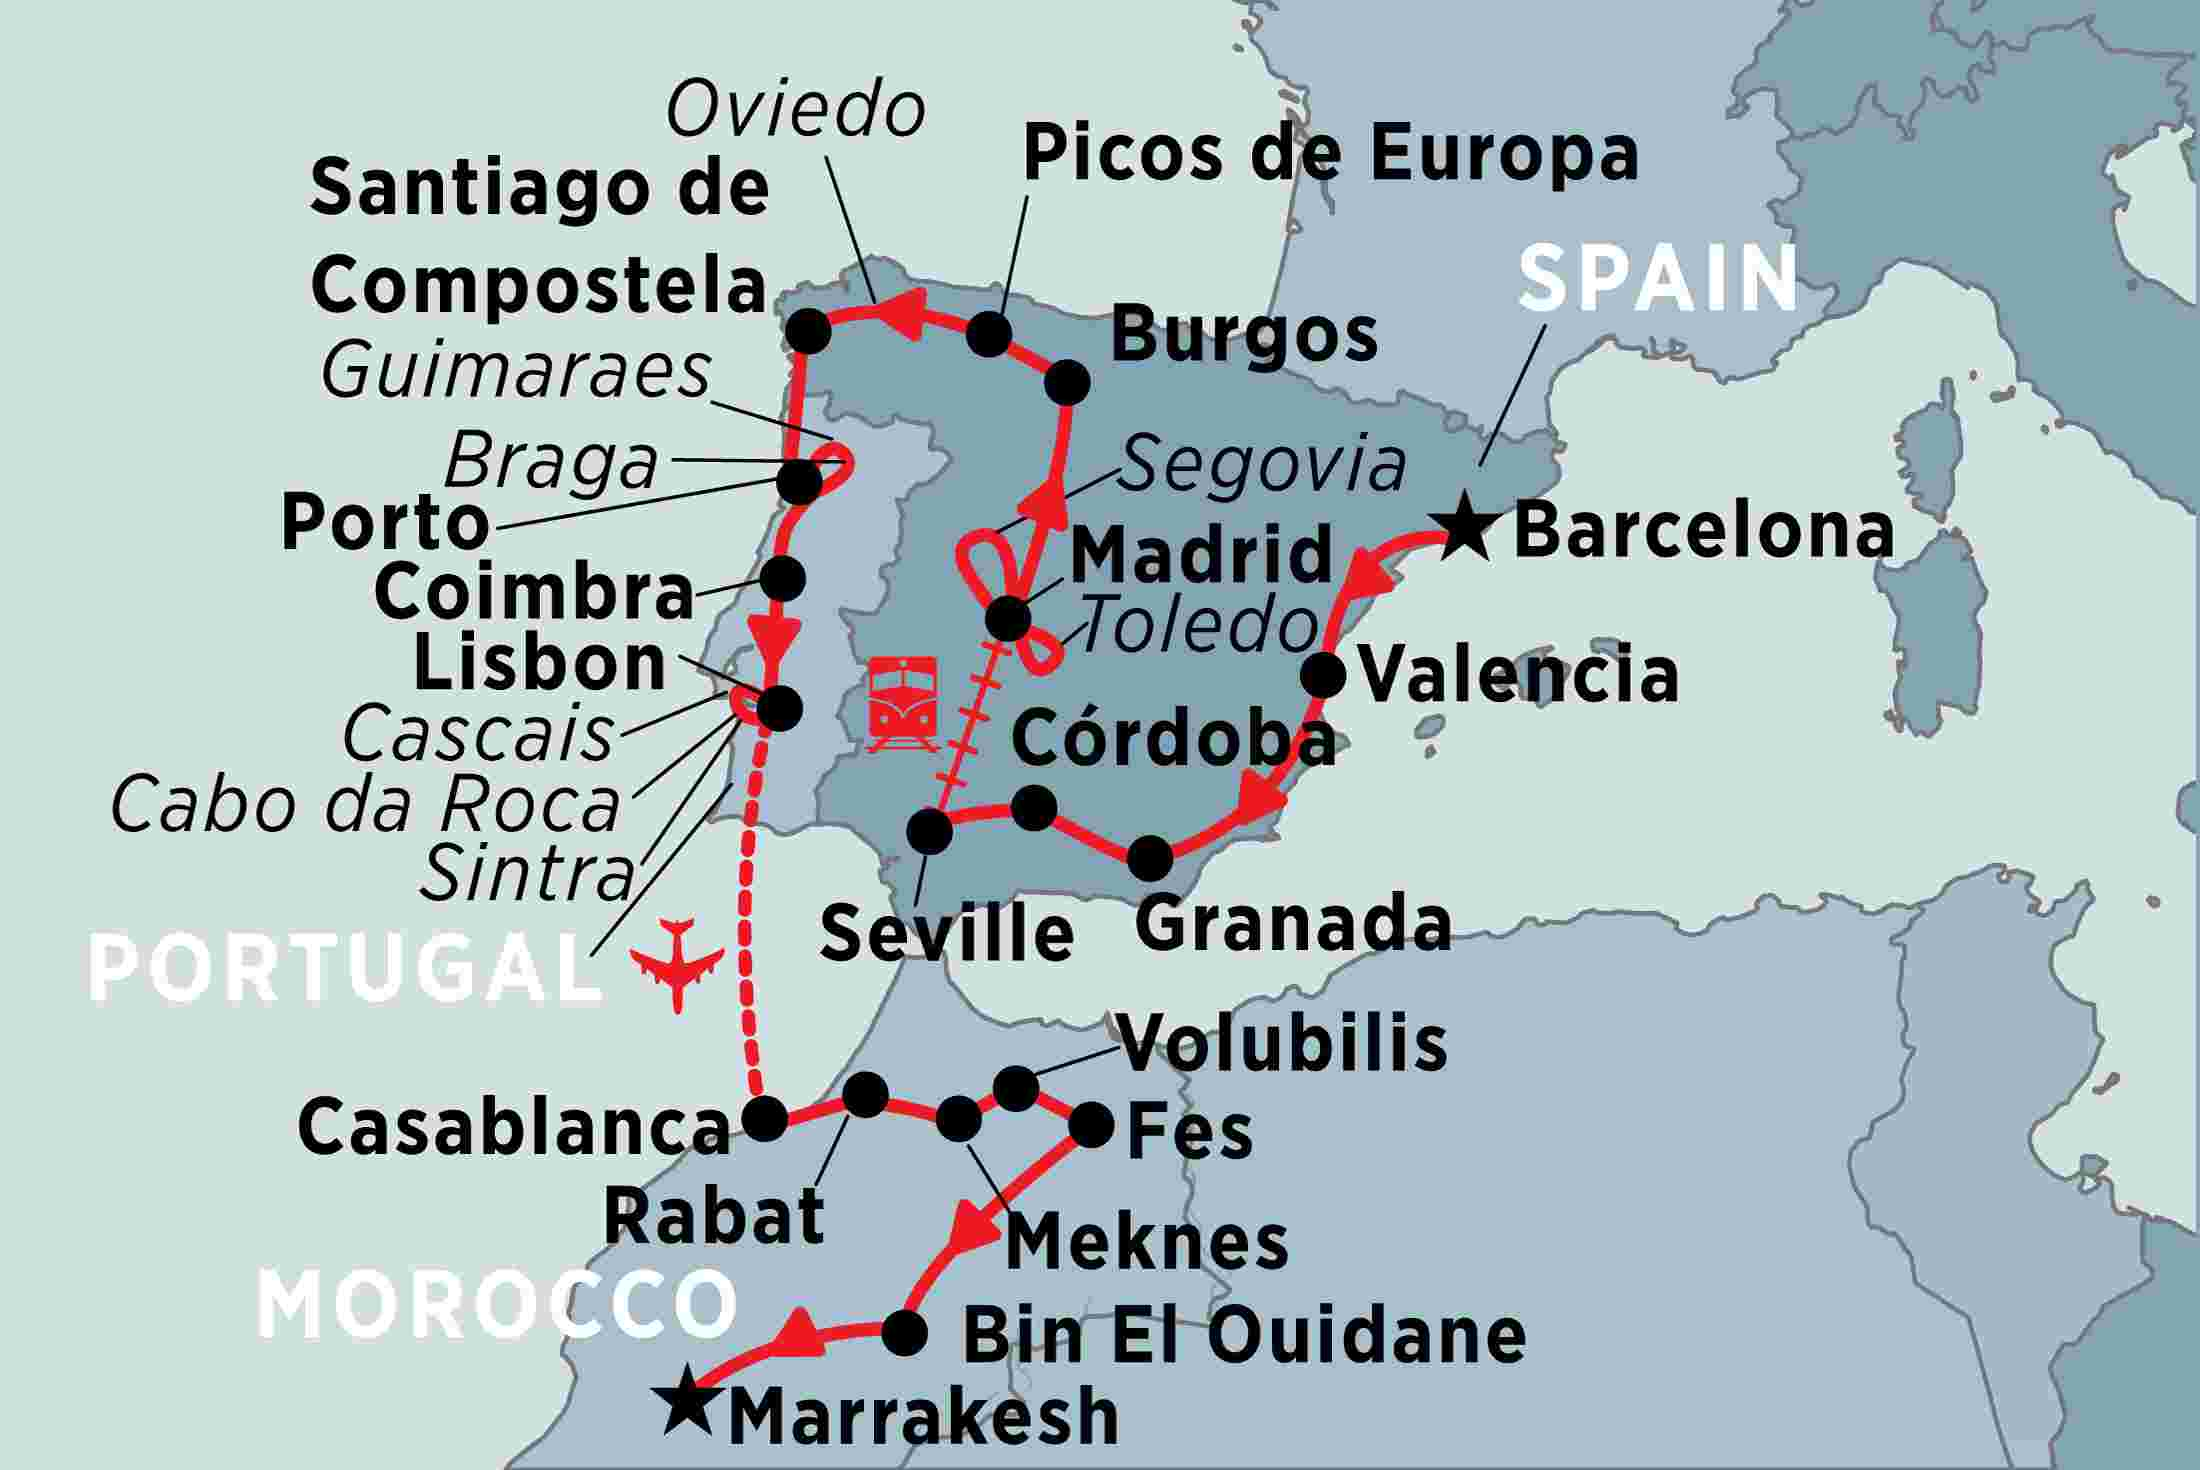 Map Of Spain And North Africa.Journey Through Spain Portugal Morocco Overview Journey Through Spain Portugal Morocco